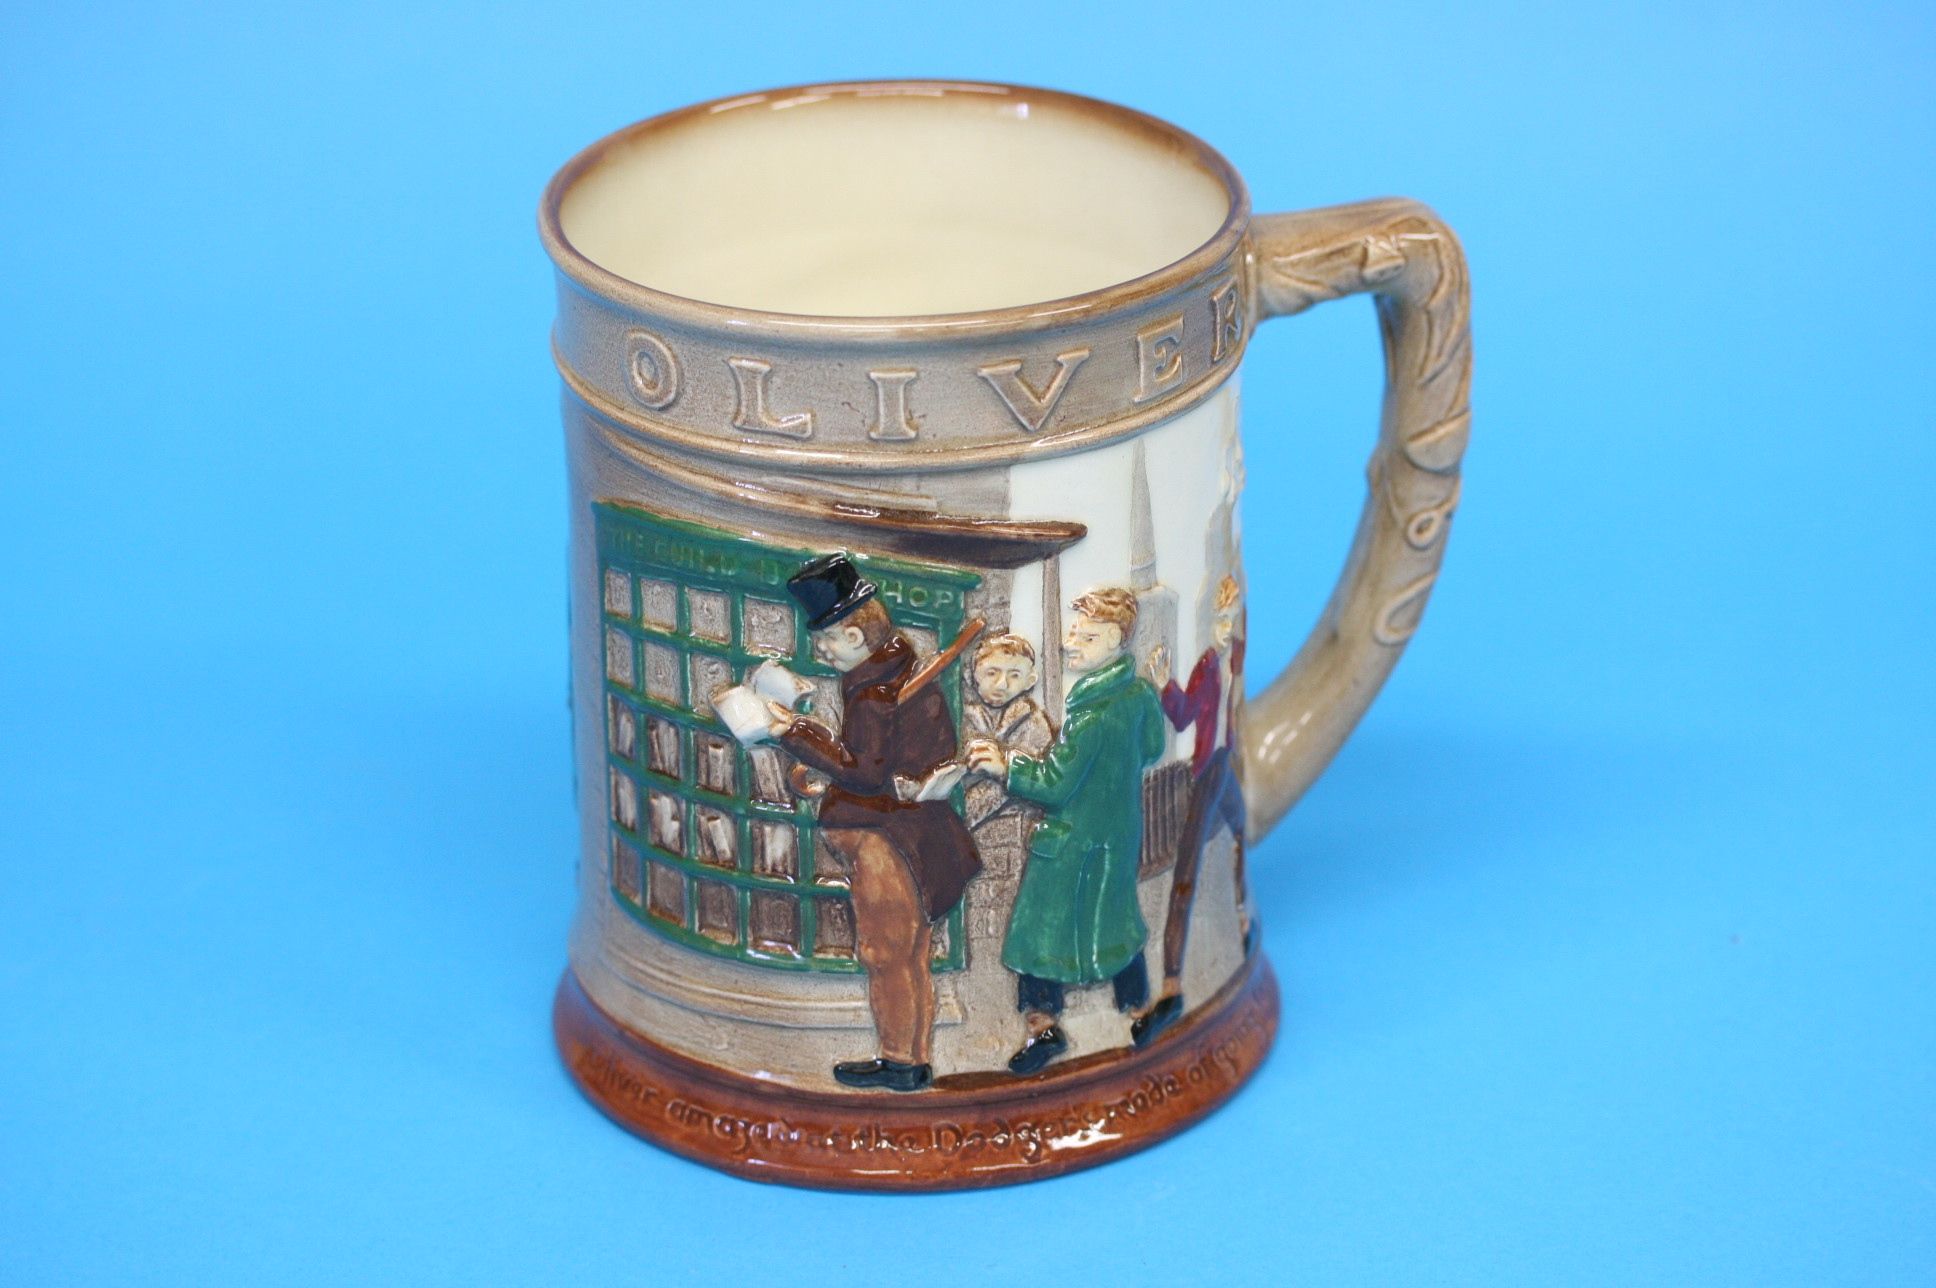 A Royal Doulton 'Oliver Twist' tankard - Image 2 of 3